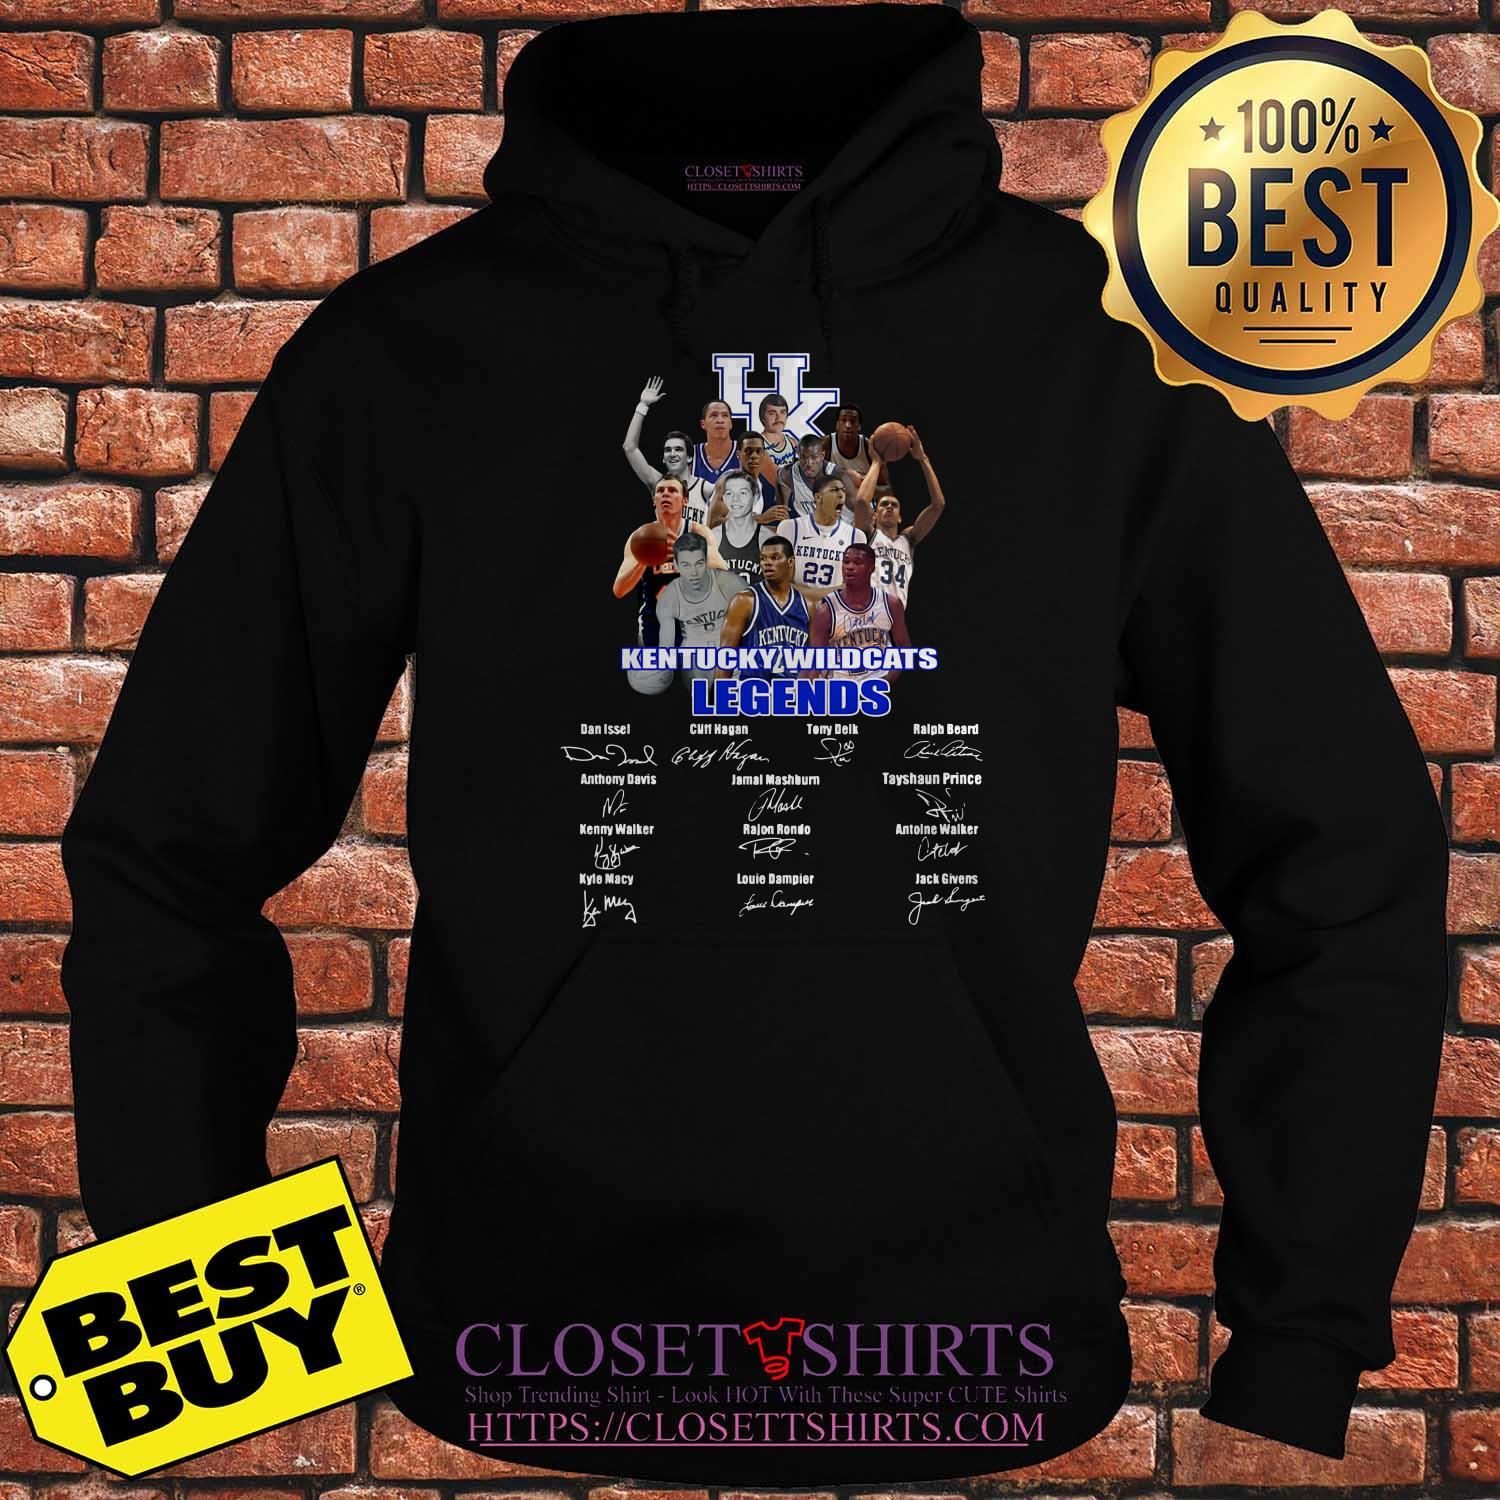 Kentucky Wildcats Legends Signature Hoodies